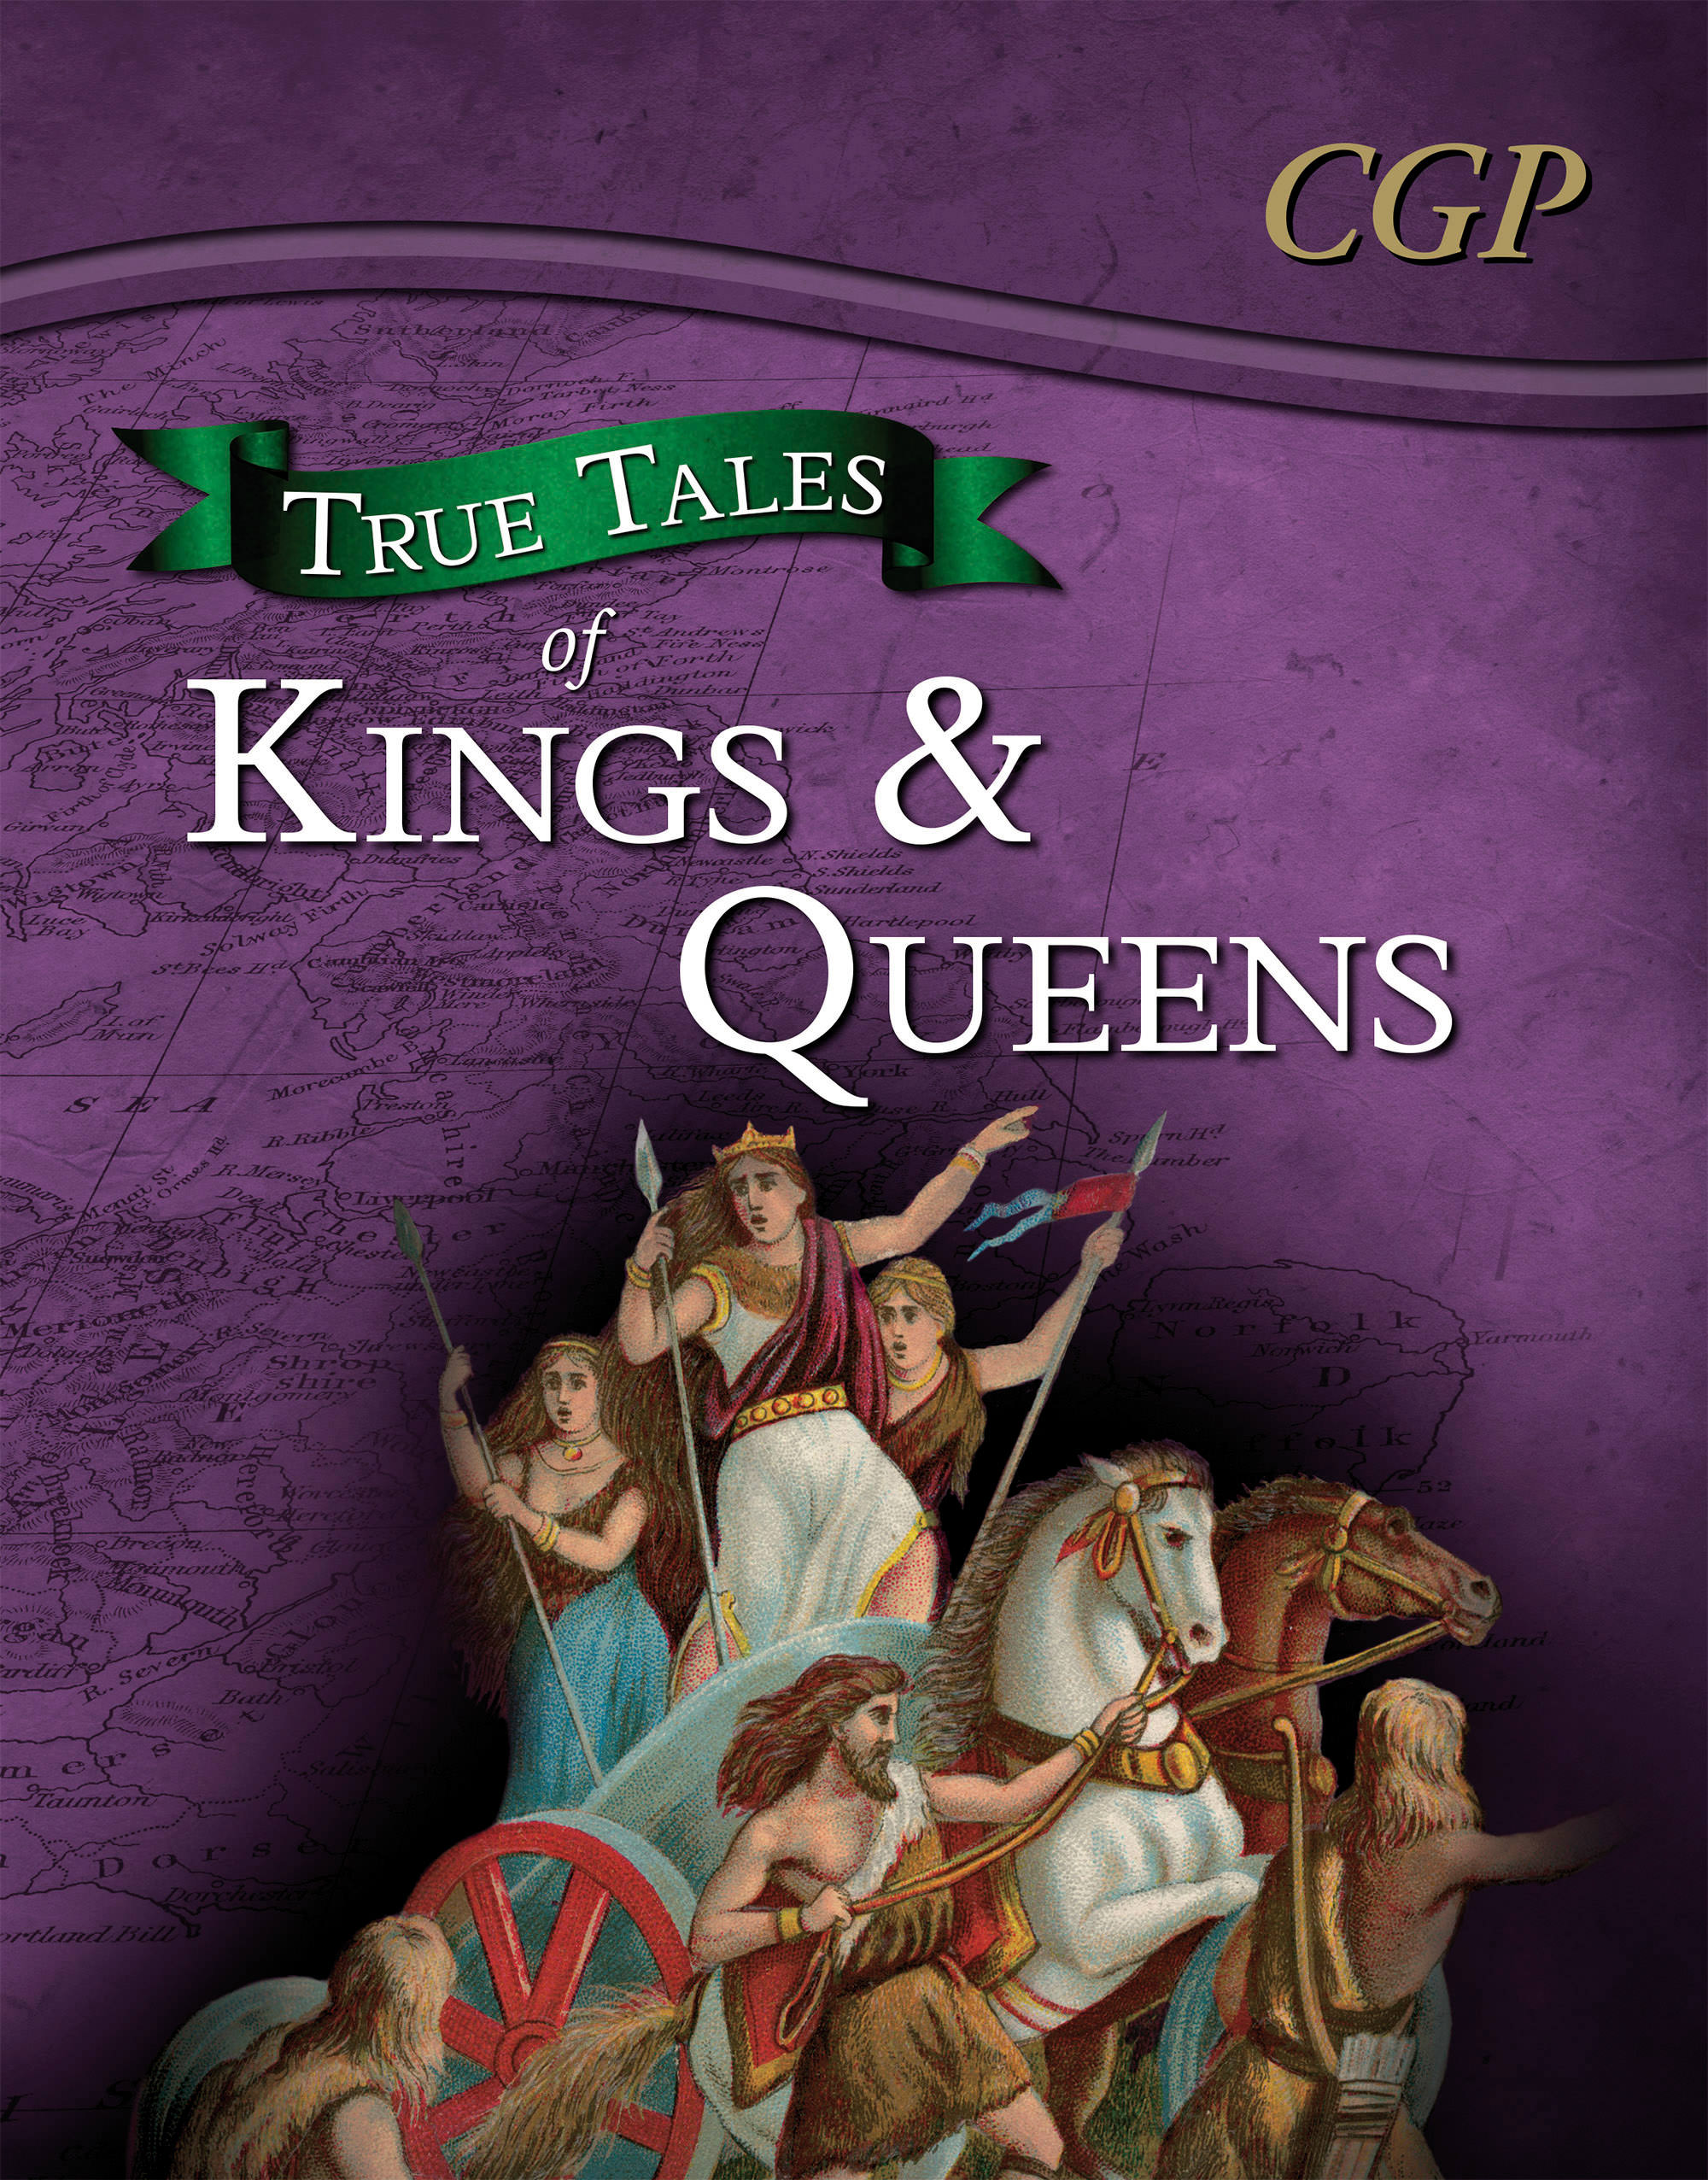 AHR21DK - True Tales of Kings & Queens — Reading Book: Boudica, Alfred the Great, King John & Queen